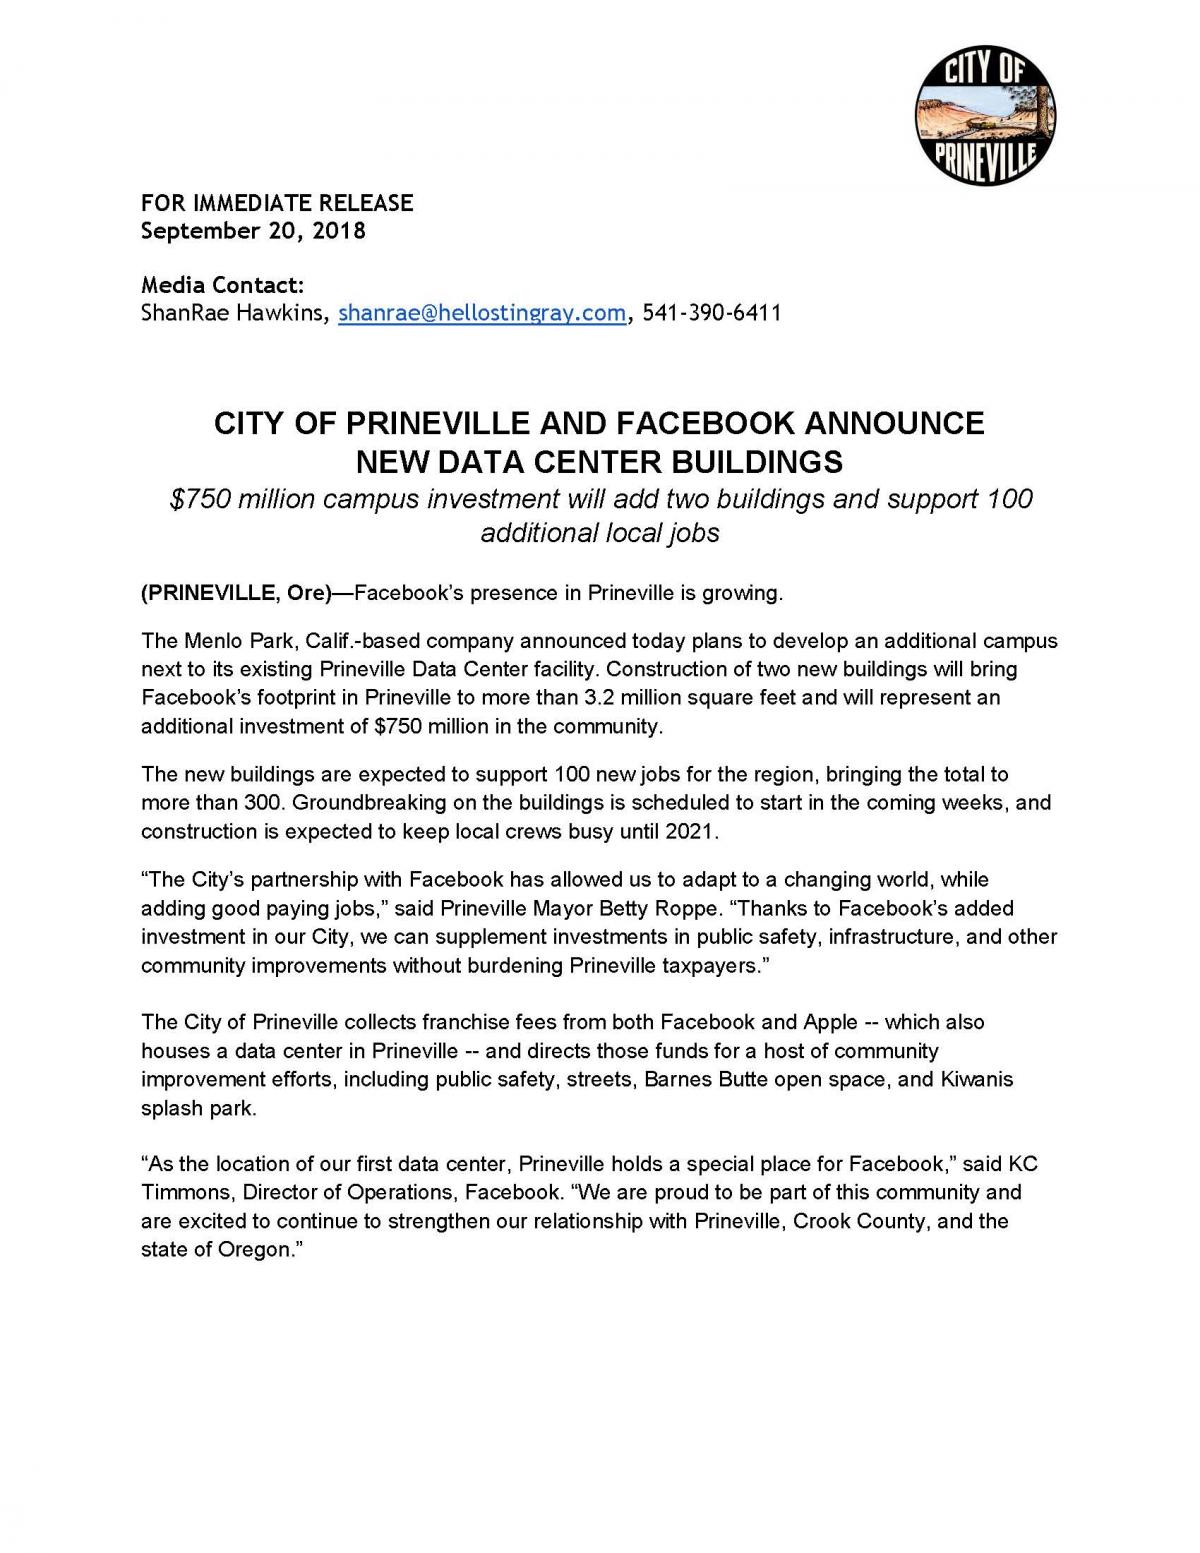 City of Prineville and Facebook Announce Additional Investment of